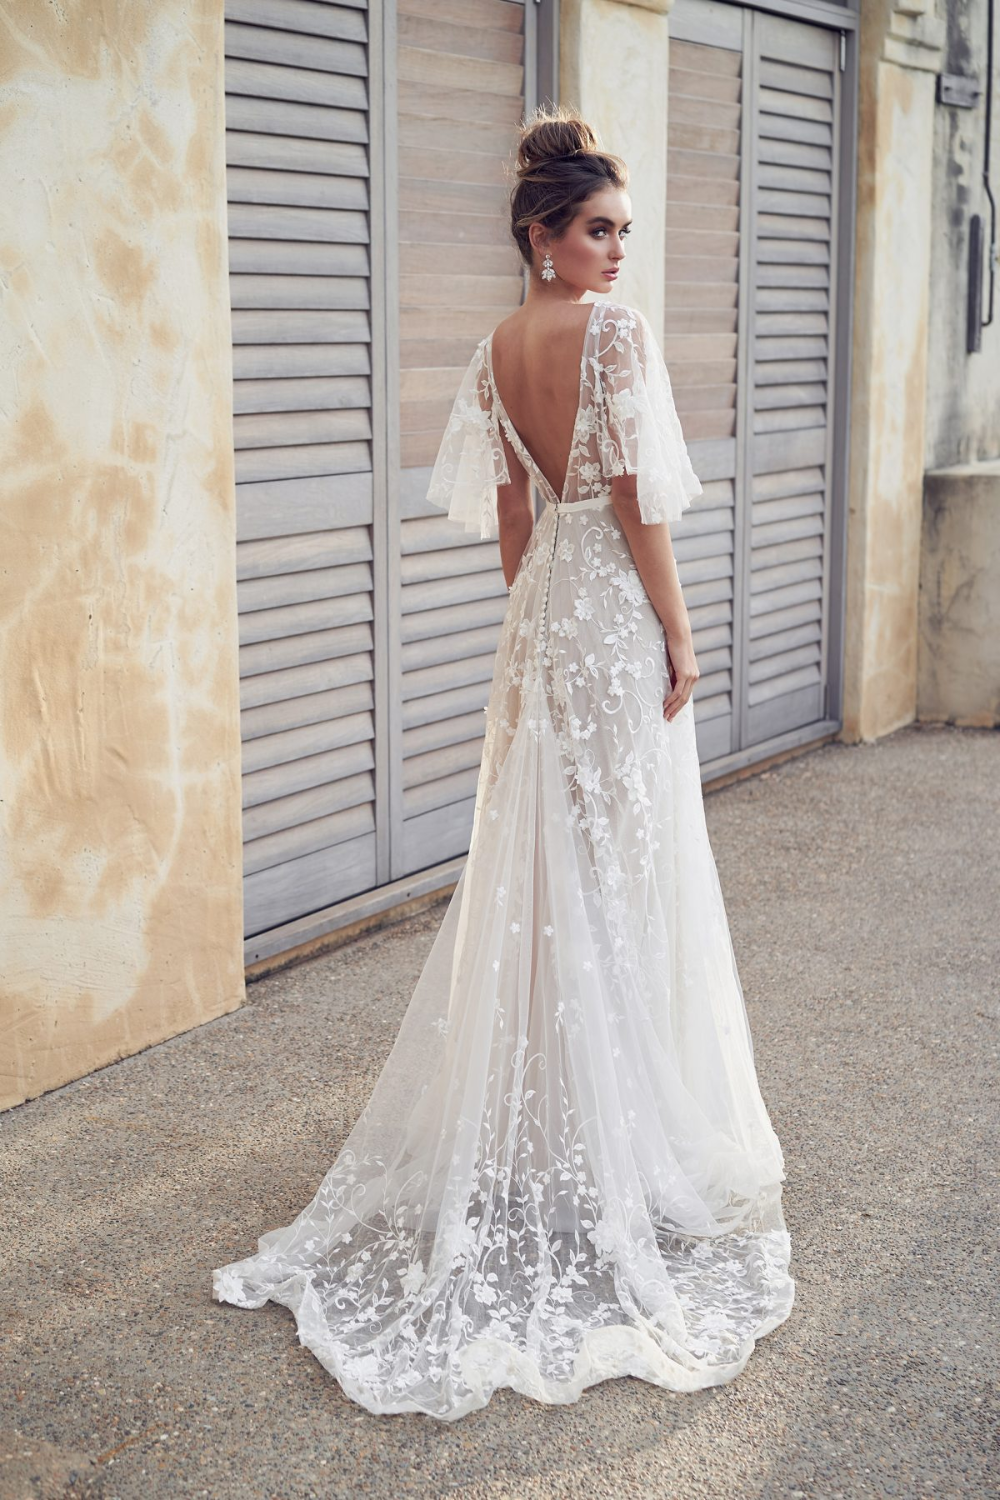 3d Floral Embroidered V Neck A Line Wedding Dress With Draped Sleeves Kleinfeld Bridal In 2020 Boho Wedding Dress Lace Wedding Dresses A Line Wedding Dress